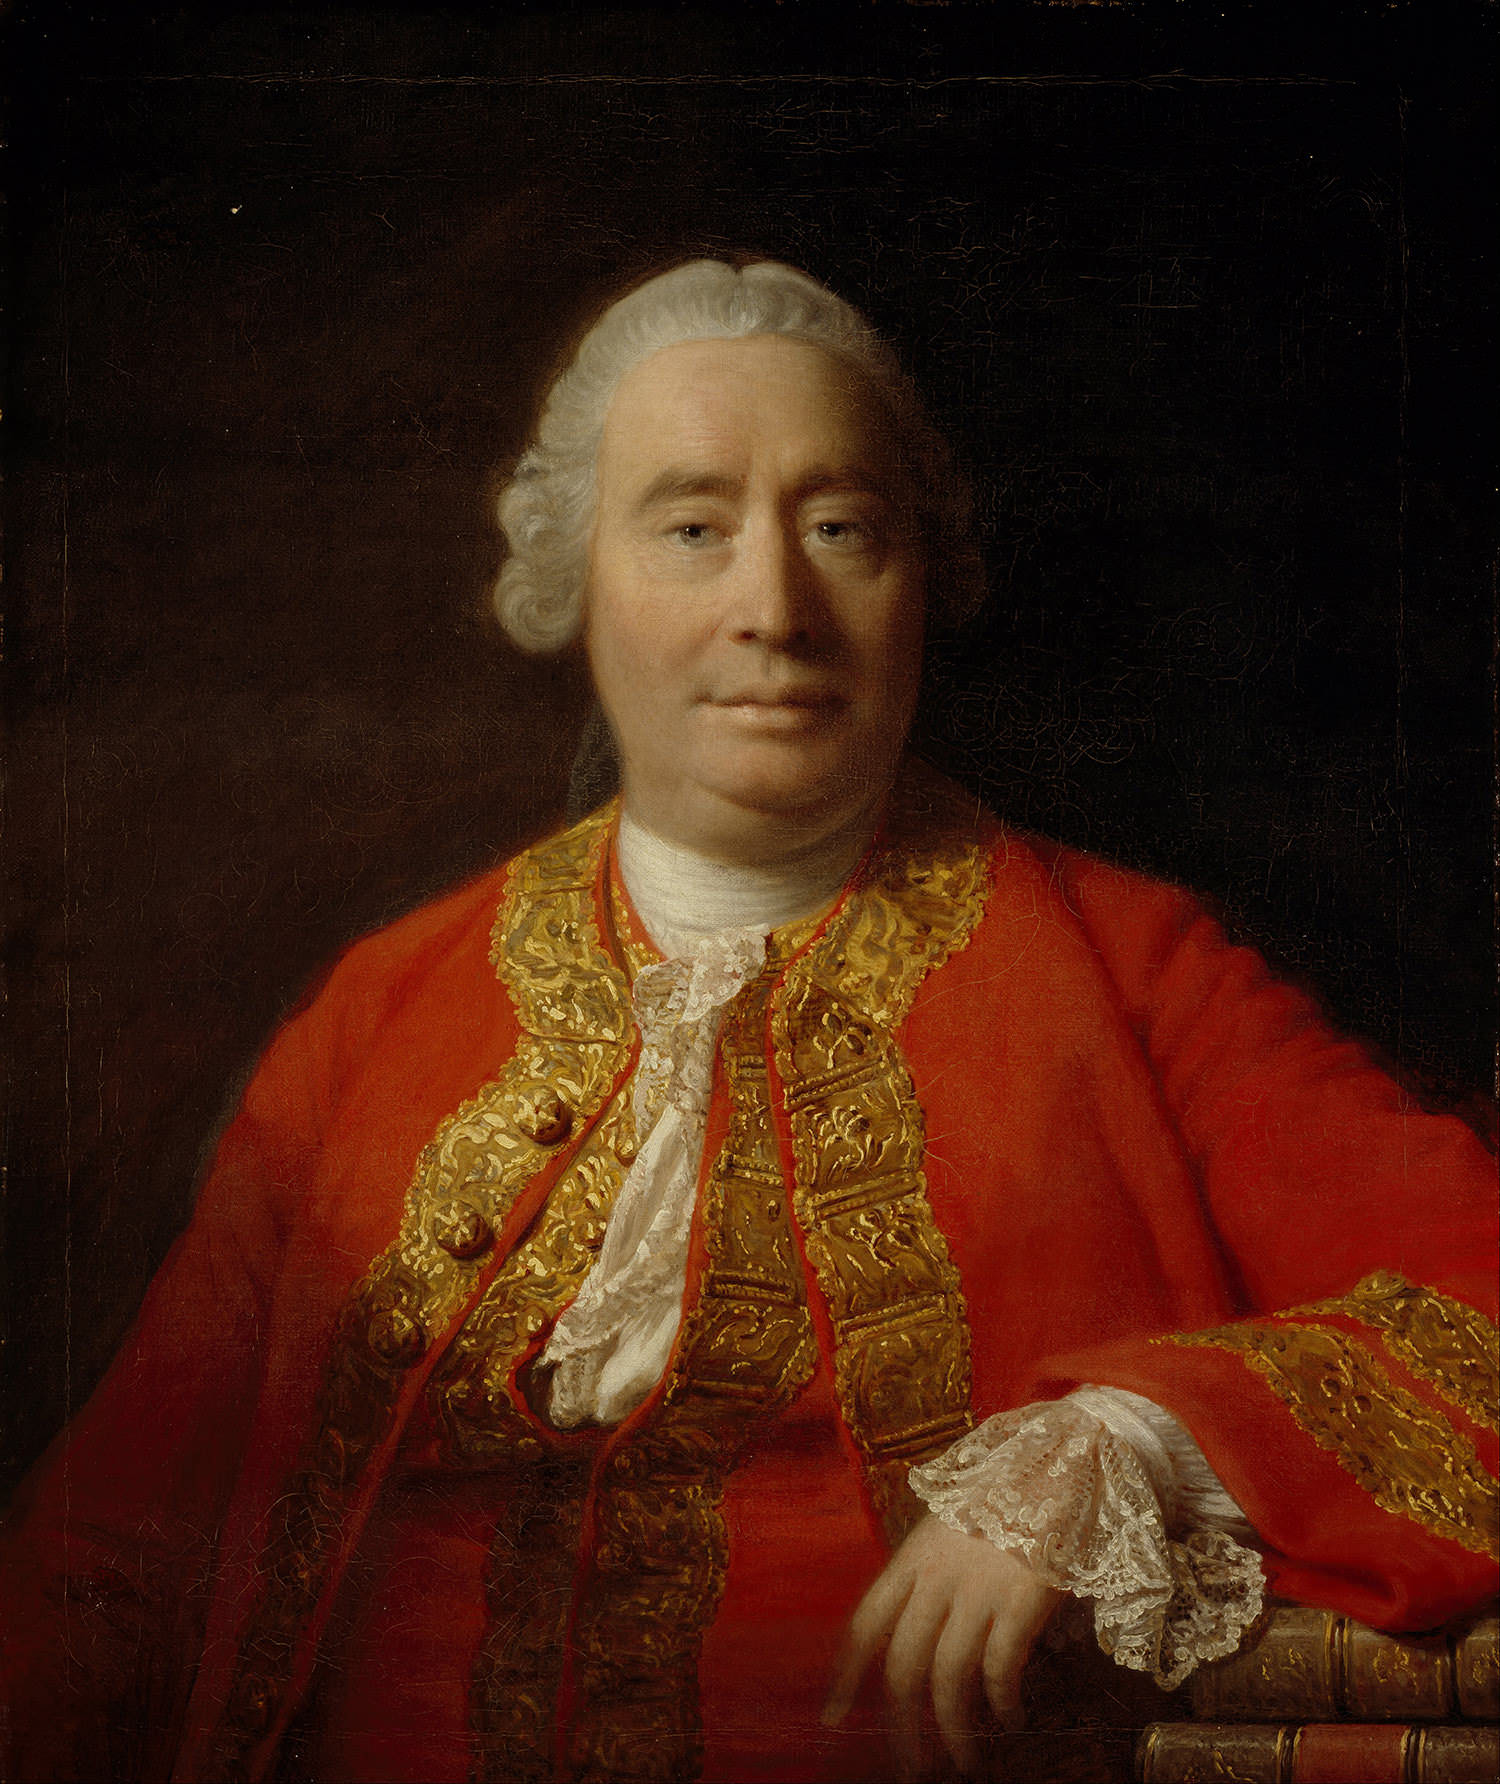 Portrait of David Hume by Allan Ramsay